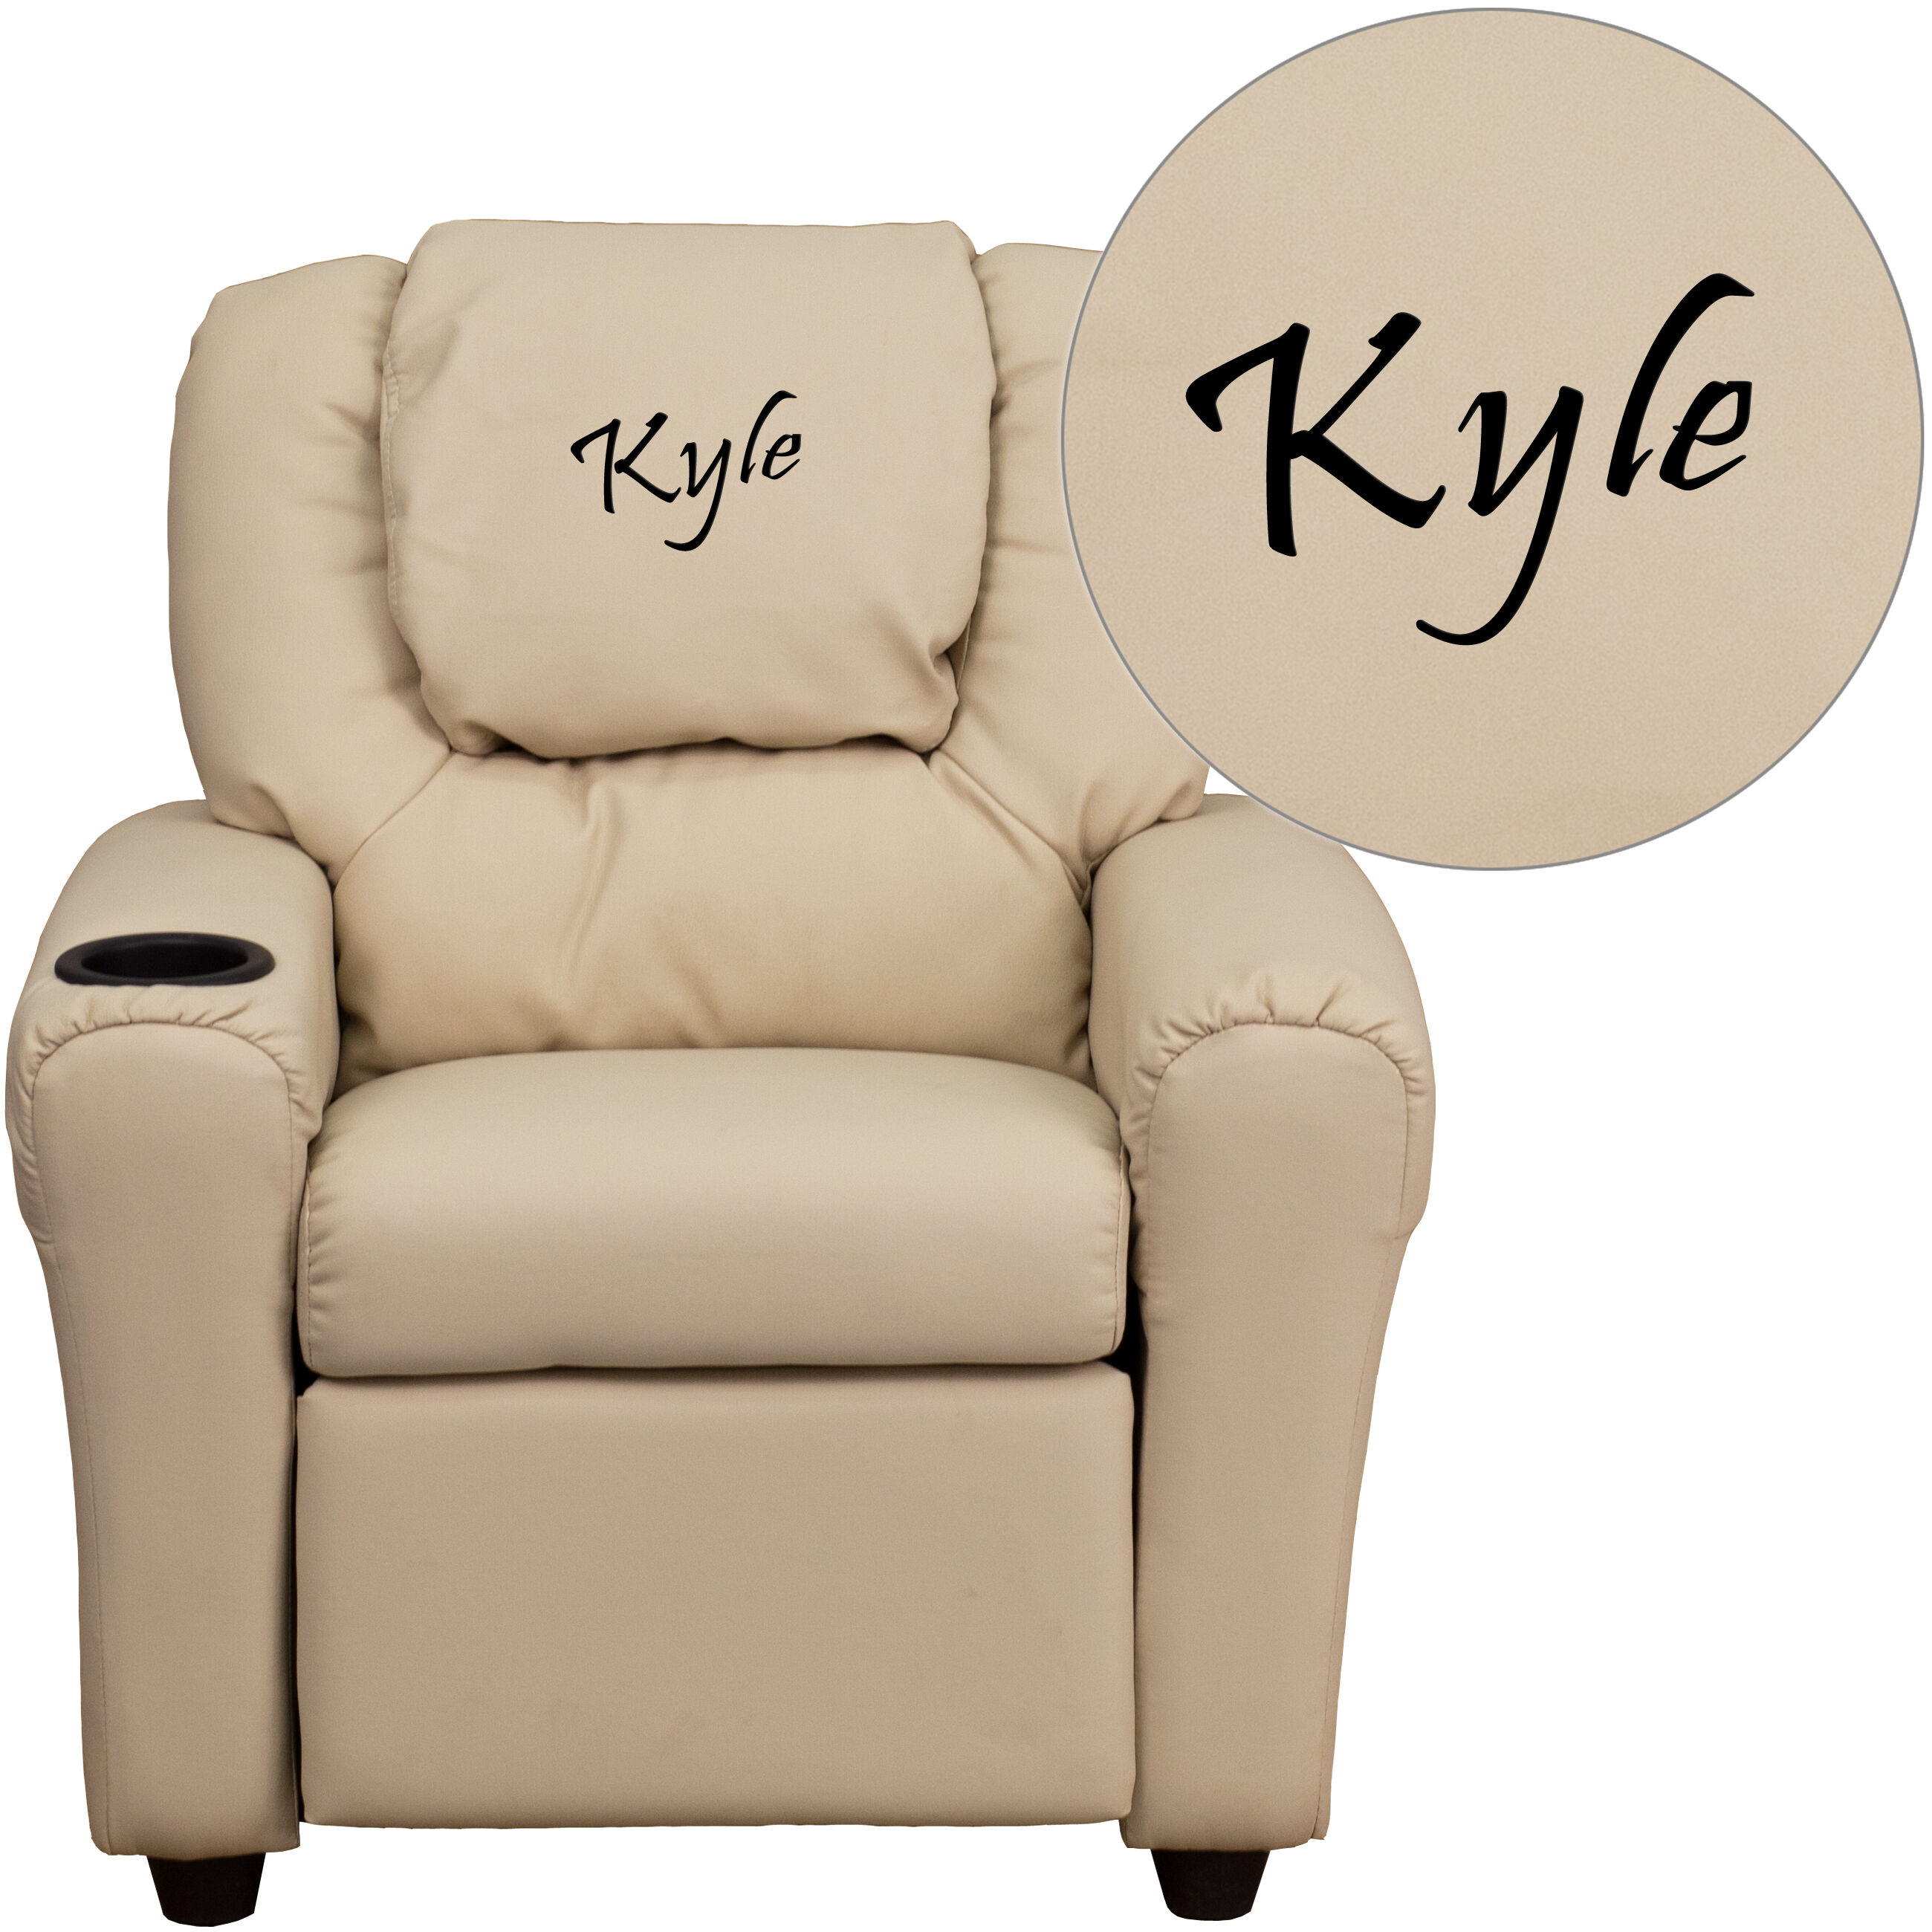 Personalized Kid Chairs Emb Beige Vinyl Kids Recliner Dg Ult Kid Bge Emb Gg